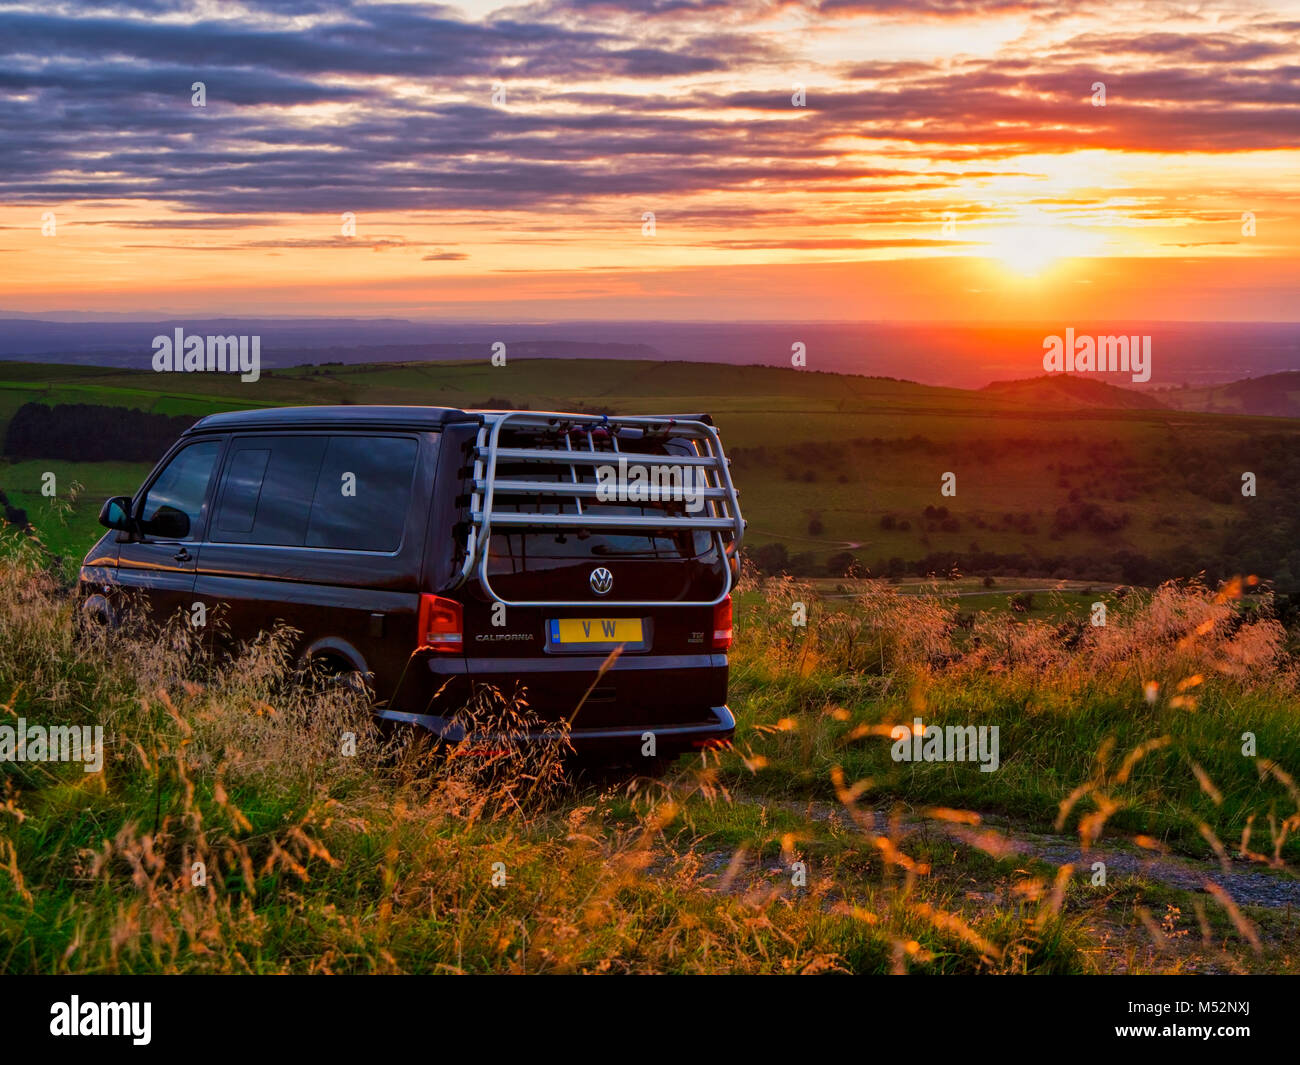 VW California camper van parked up for the night at a free glamping location the occupants enjoying the lovely sunset - Stock Image